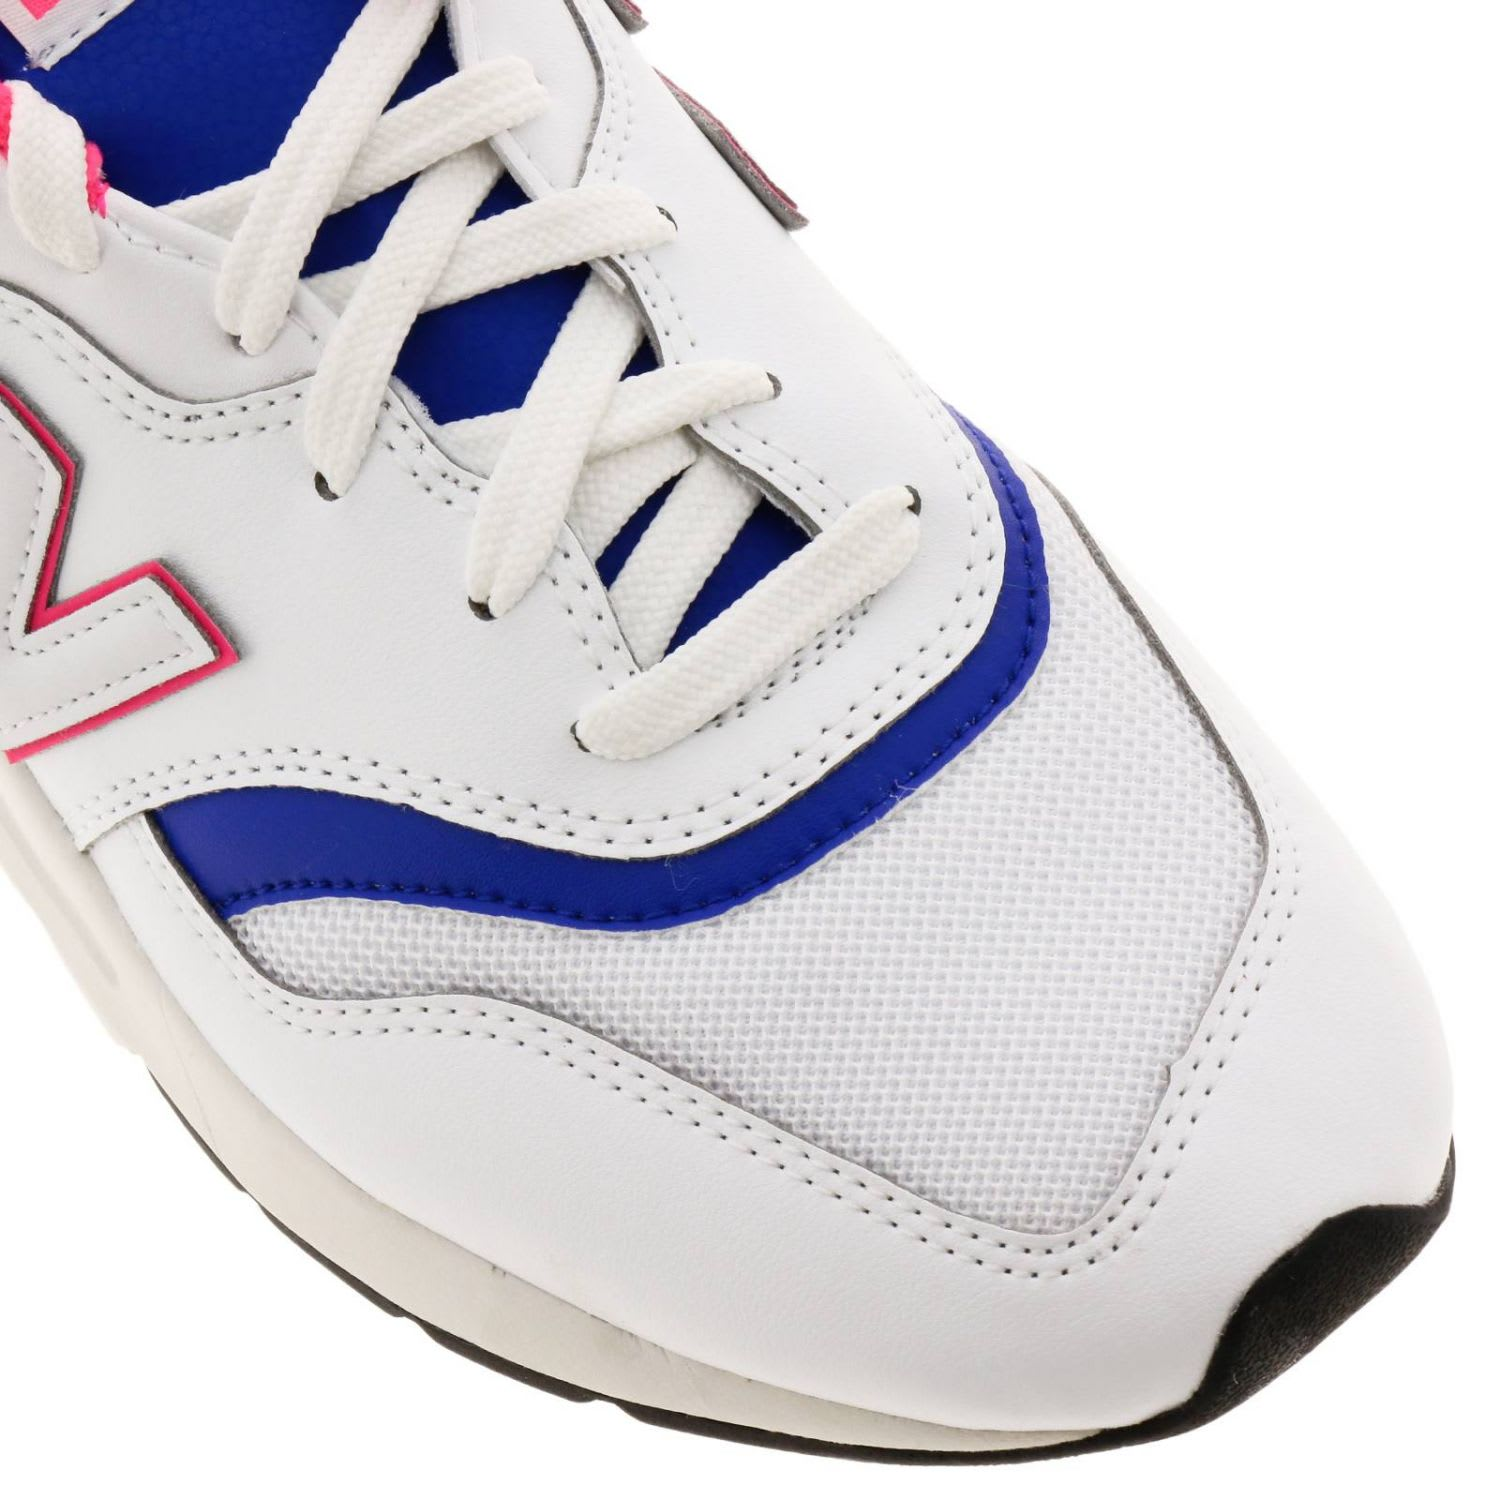 new balance basketball shoes